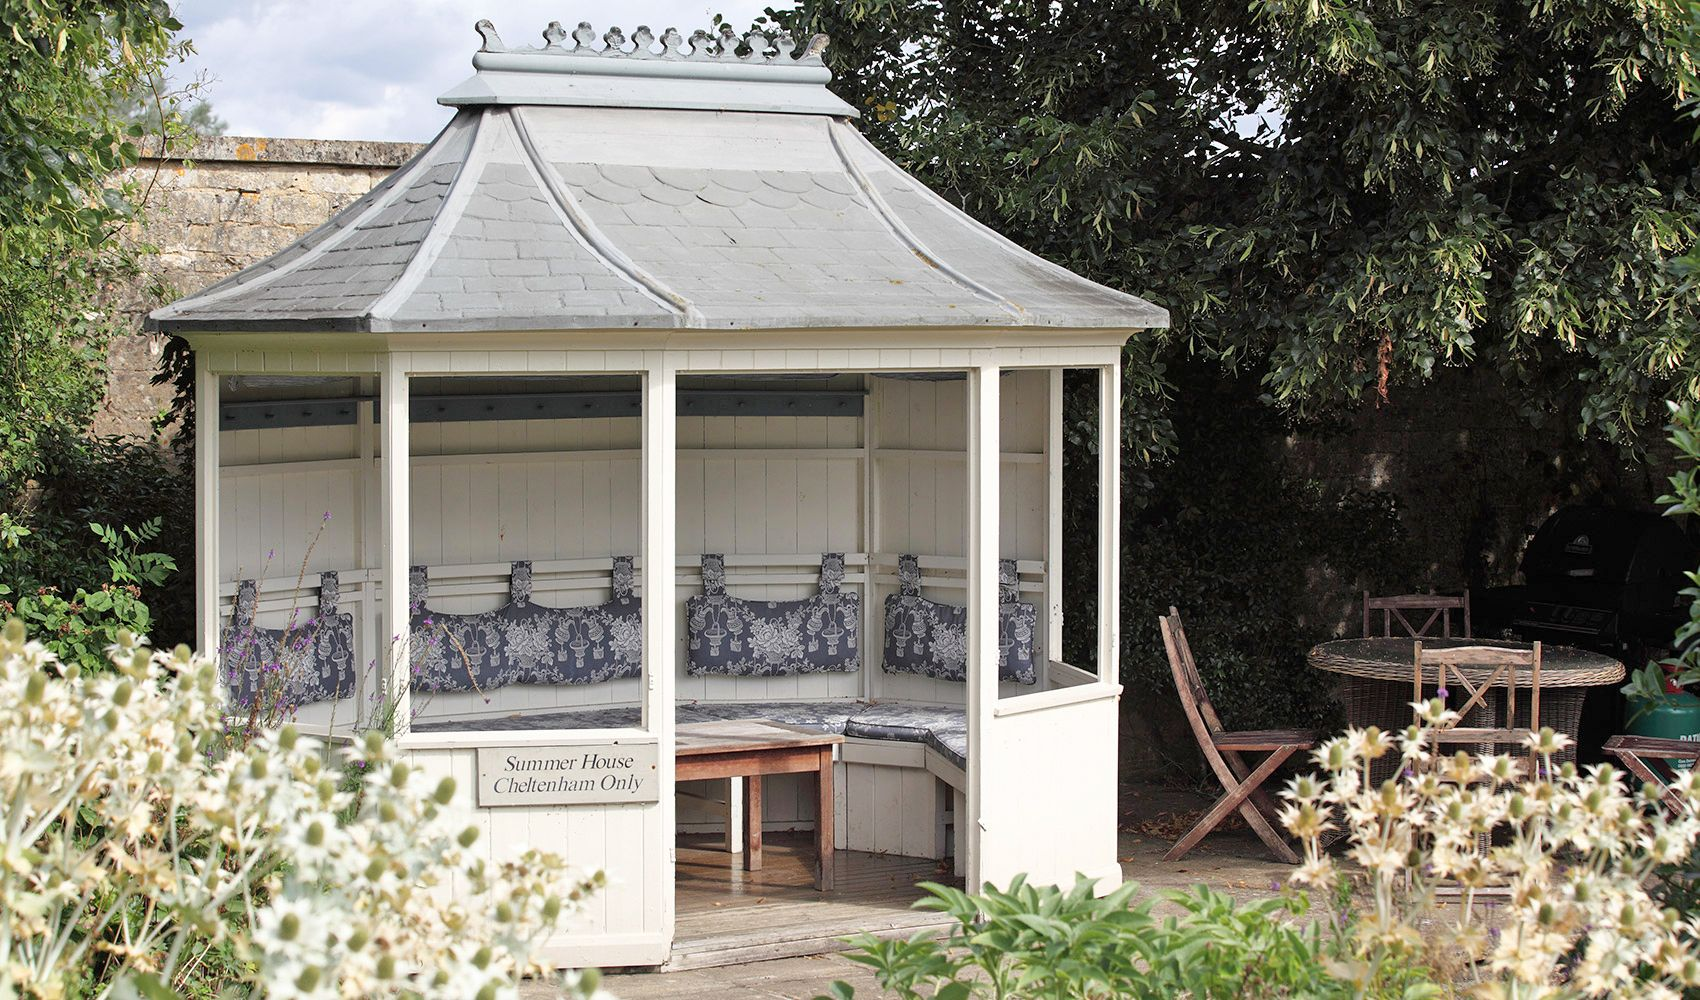 The cottage has its own private summer house, terrace & barbecue at the end of the garden